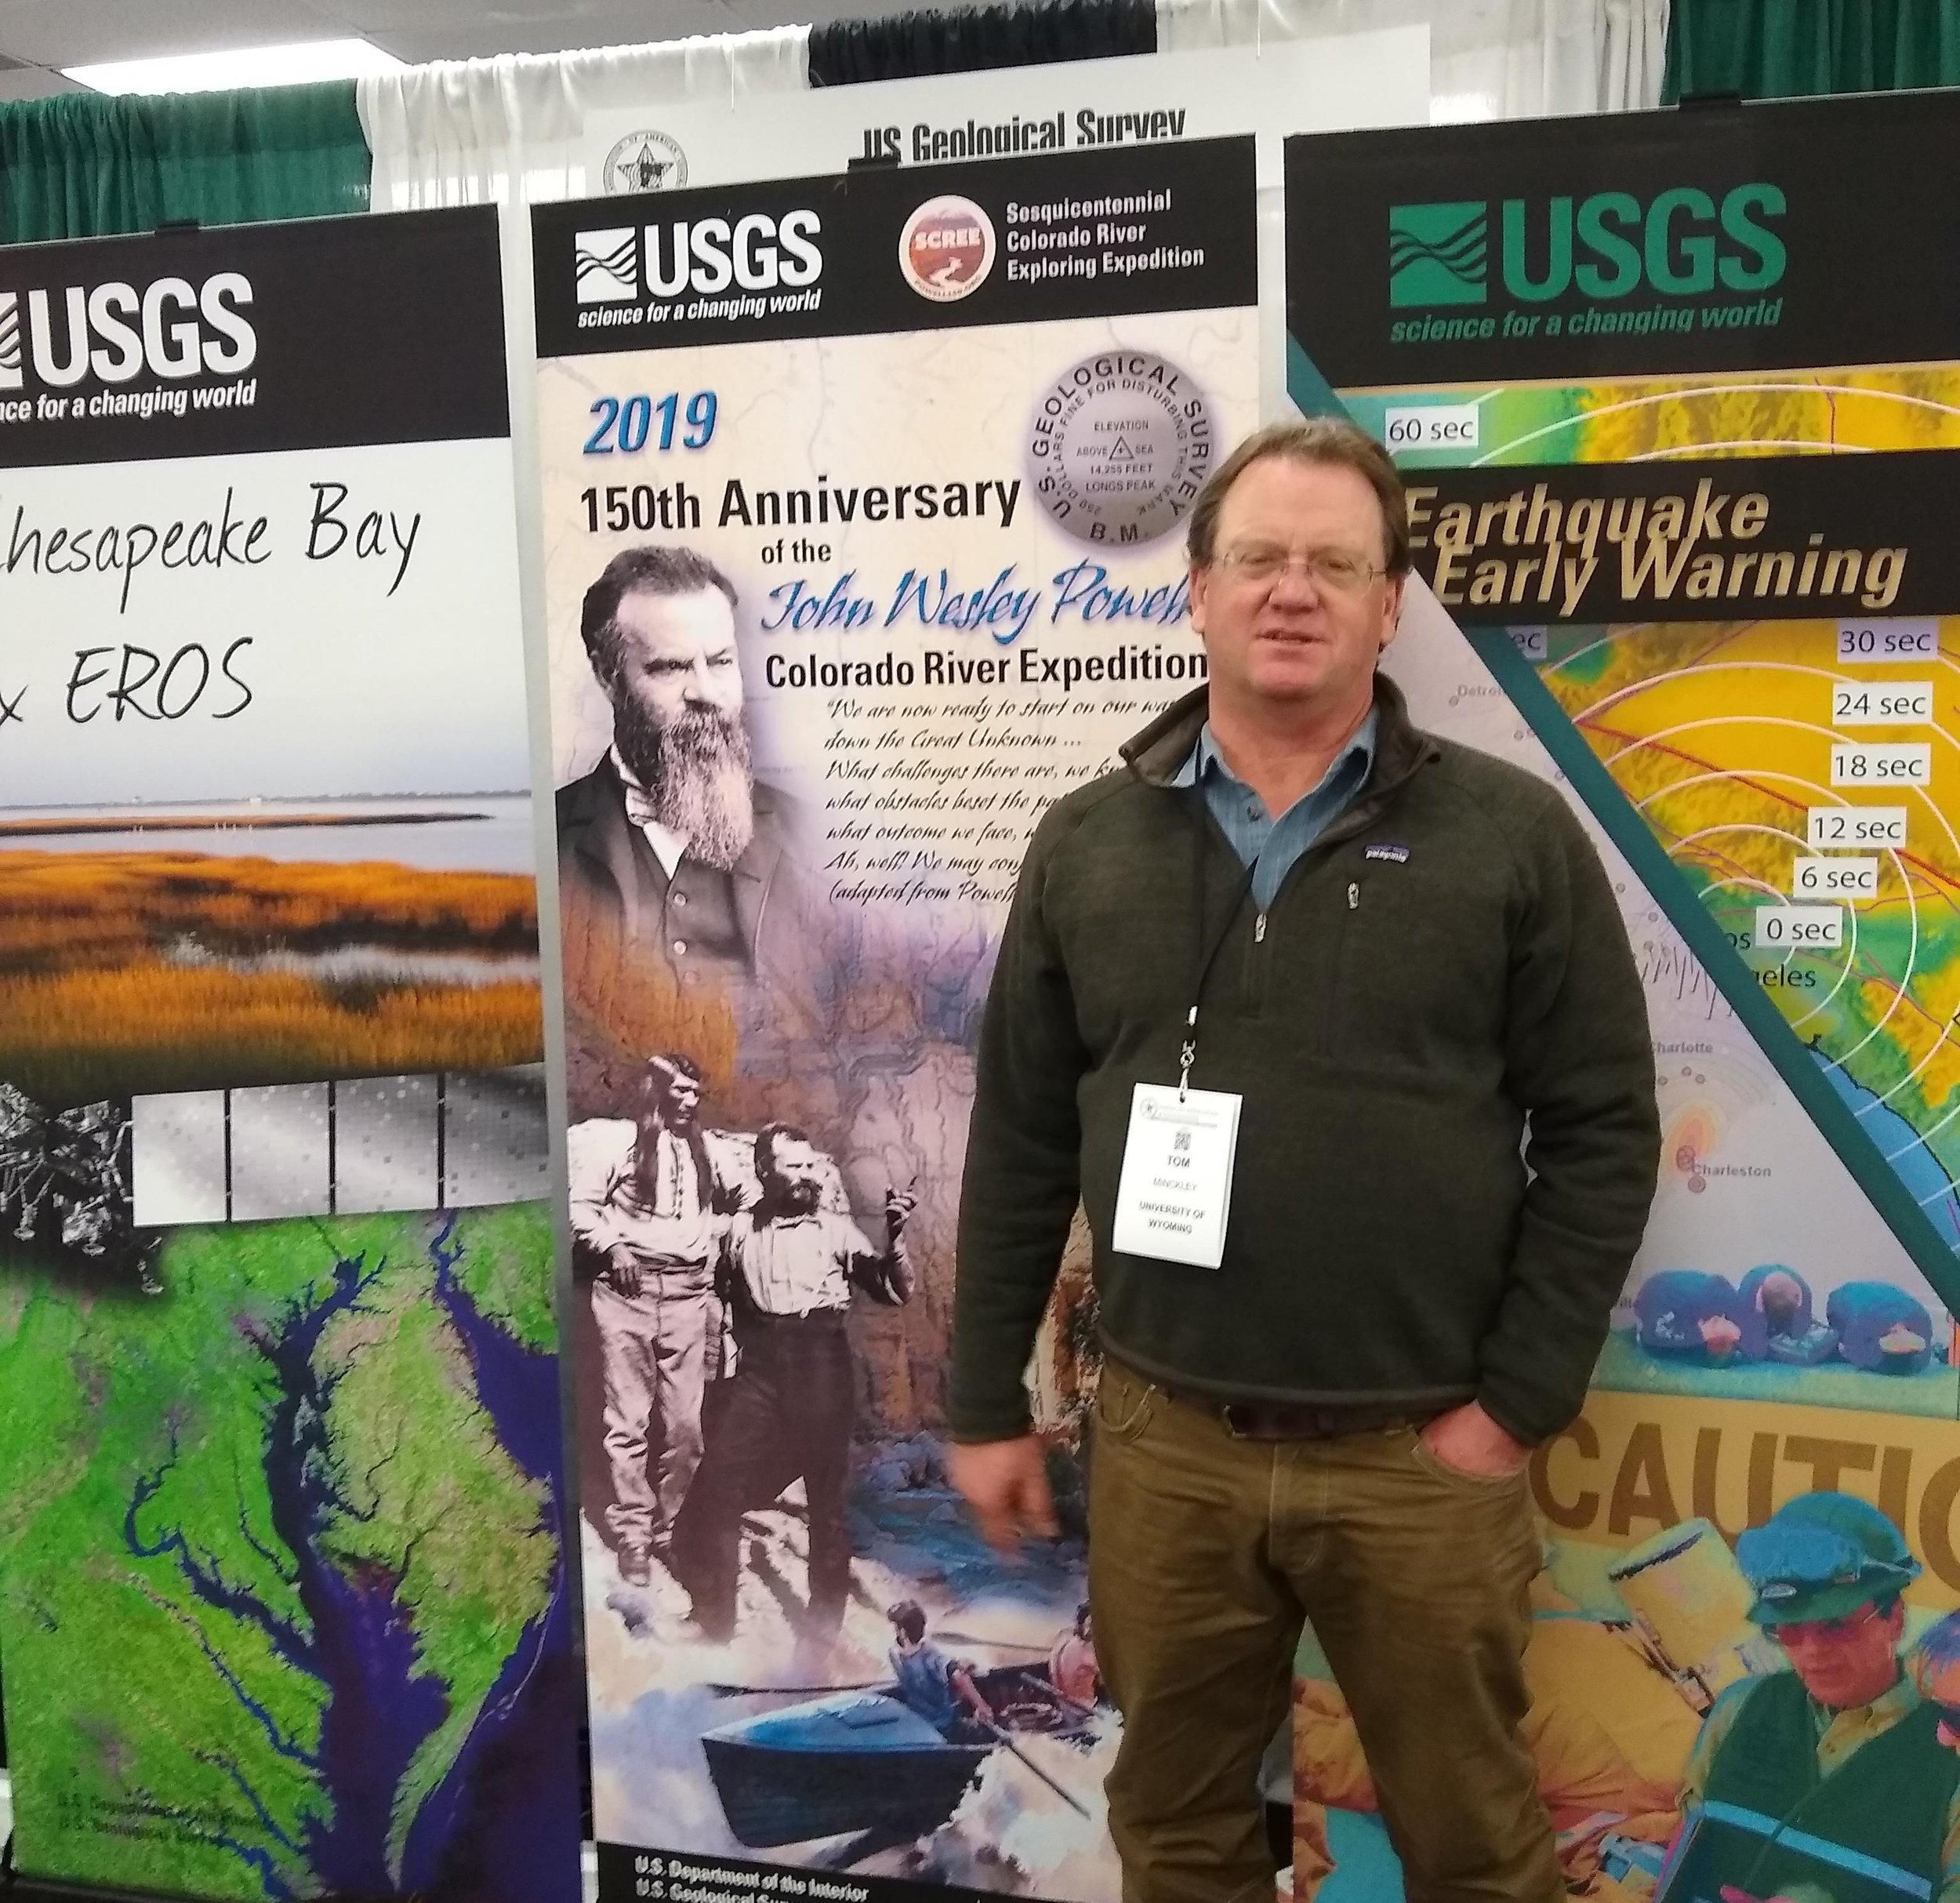 John Wesley Powell and his legacy on American geography and future in the arid West    at American Association of Geographer's 2019 Meeting in Washington D.C., April 5, 2019.  Members of SCREE, Tom Minckley, Jason Robison and William Gribb all contributed remarks during the conference session.